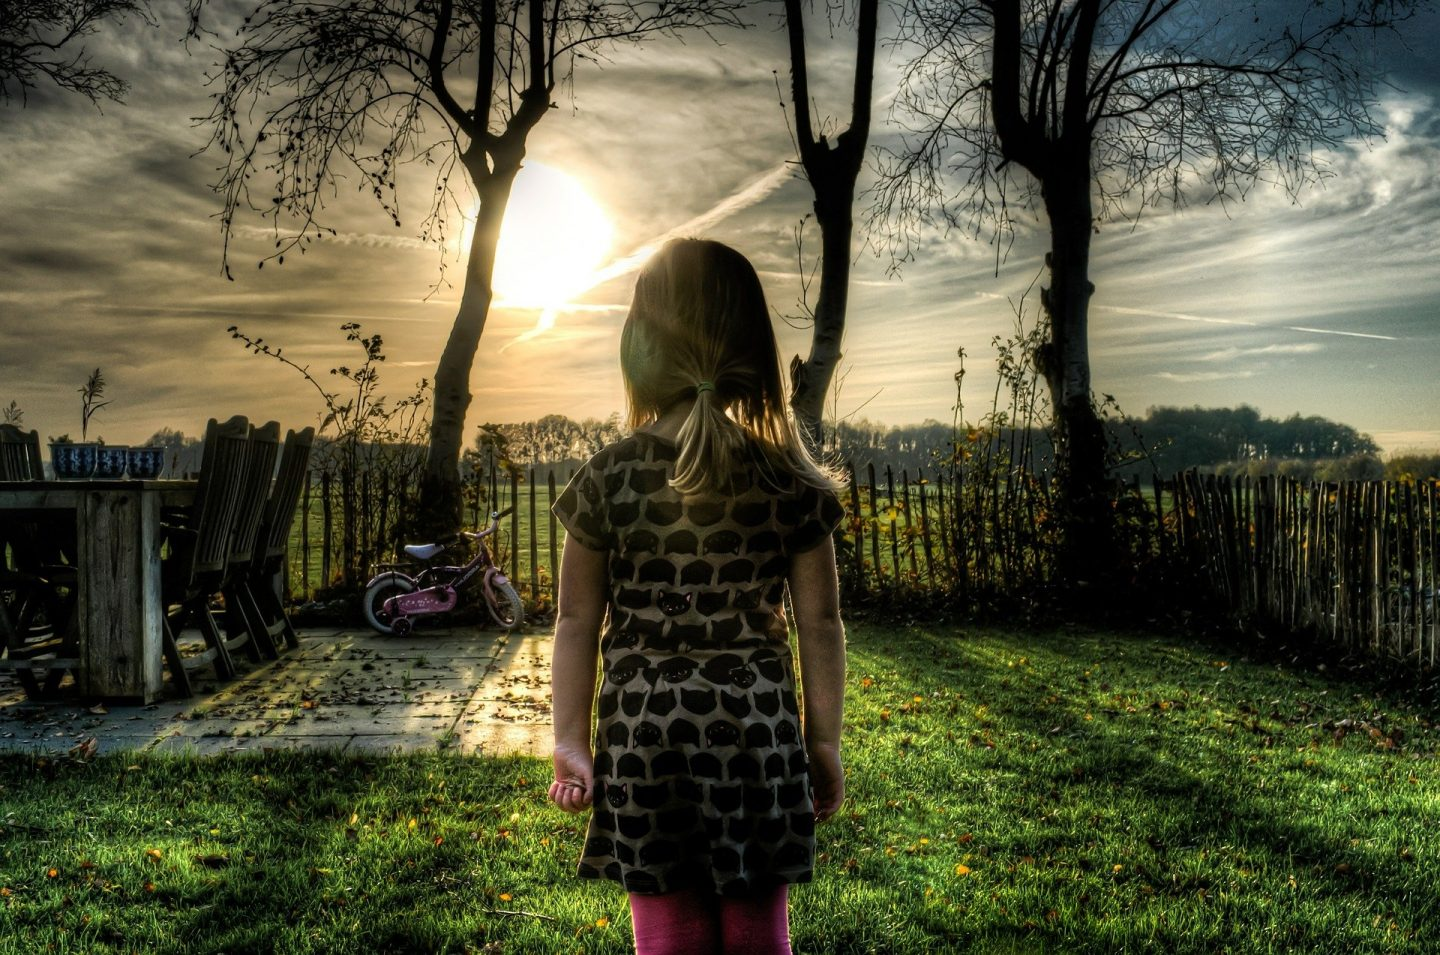 Exploring moral values with your child